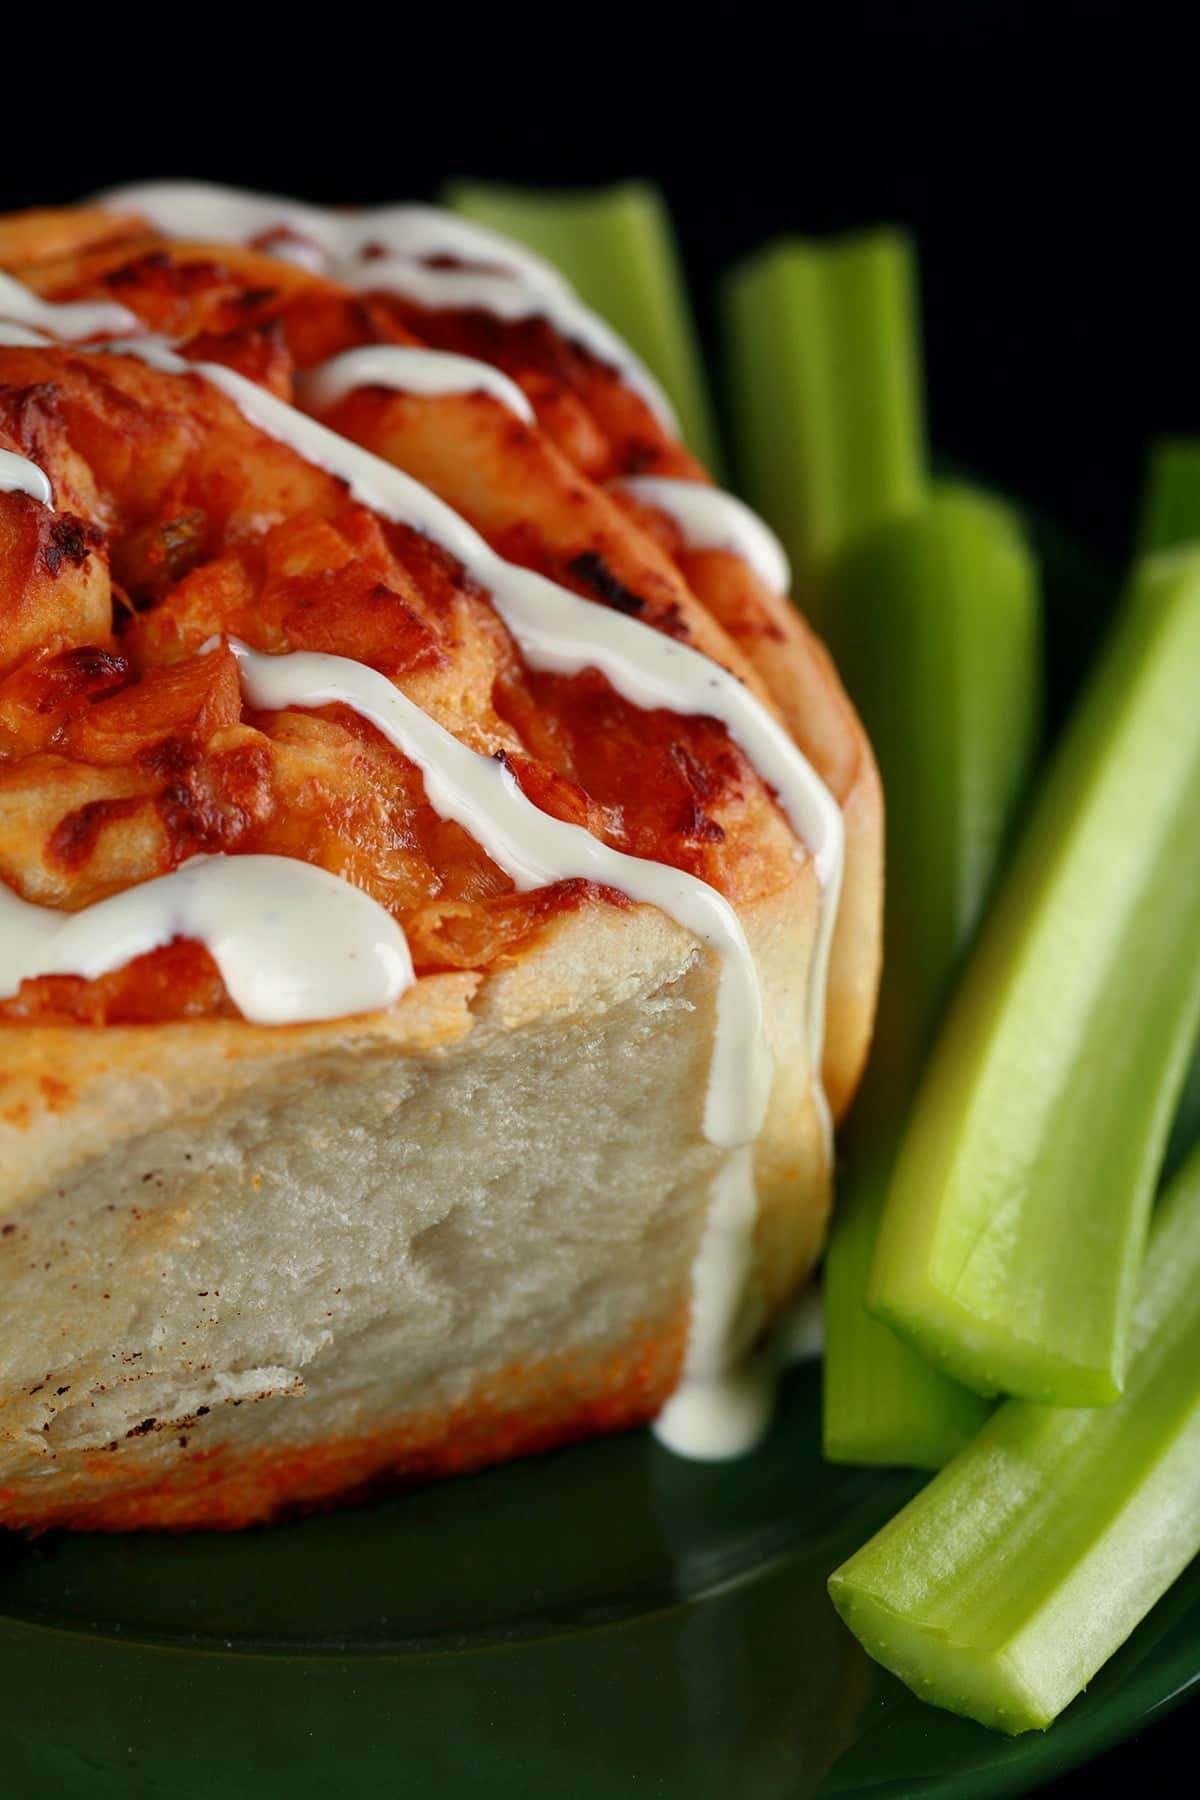 A close up photo of a buffalo chicken bun - like a cinnamon bun, but with a buffalo chicken filling instead. It is drizzled with ranch dressing, and has celery sticks on the side.